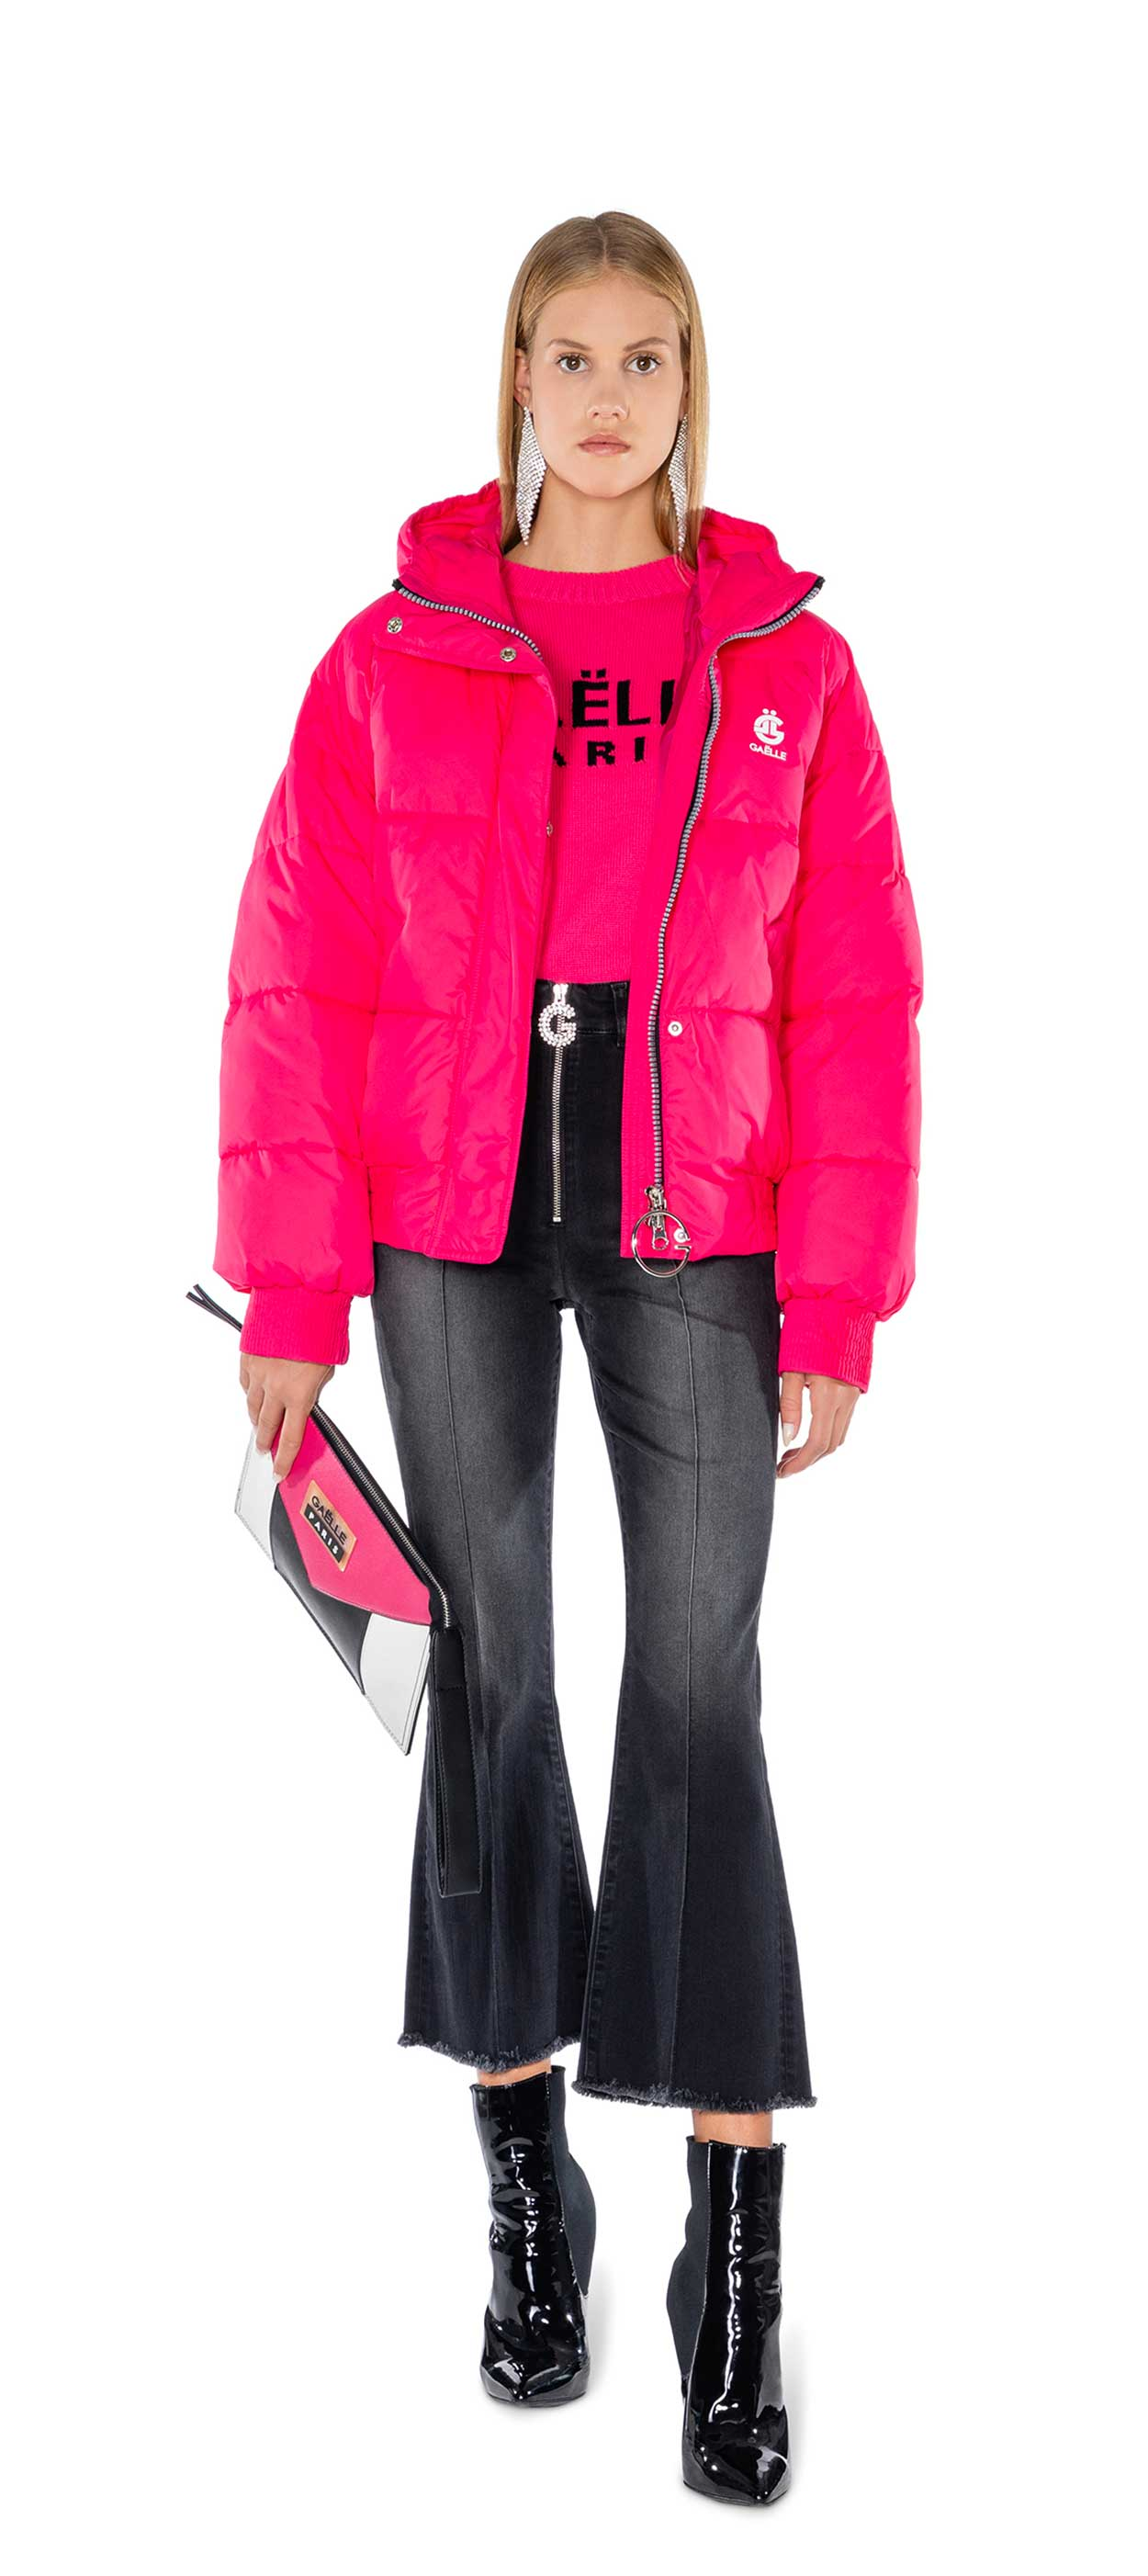 DOWN JACKET - GBD7204 - GAELLE PARIS